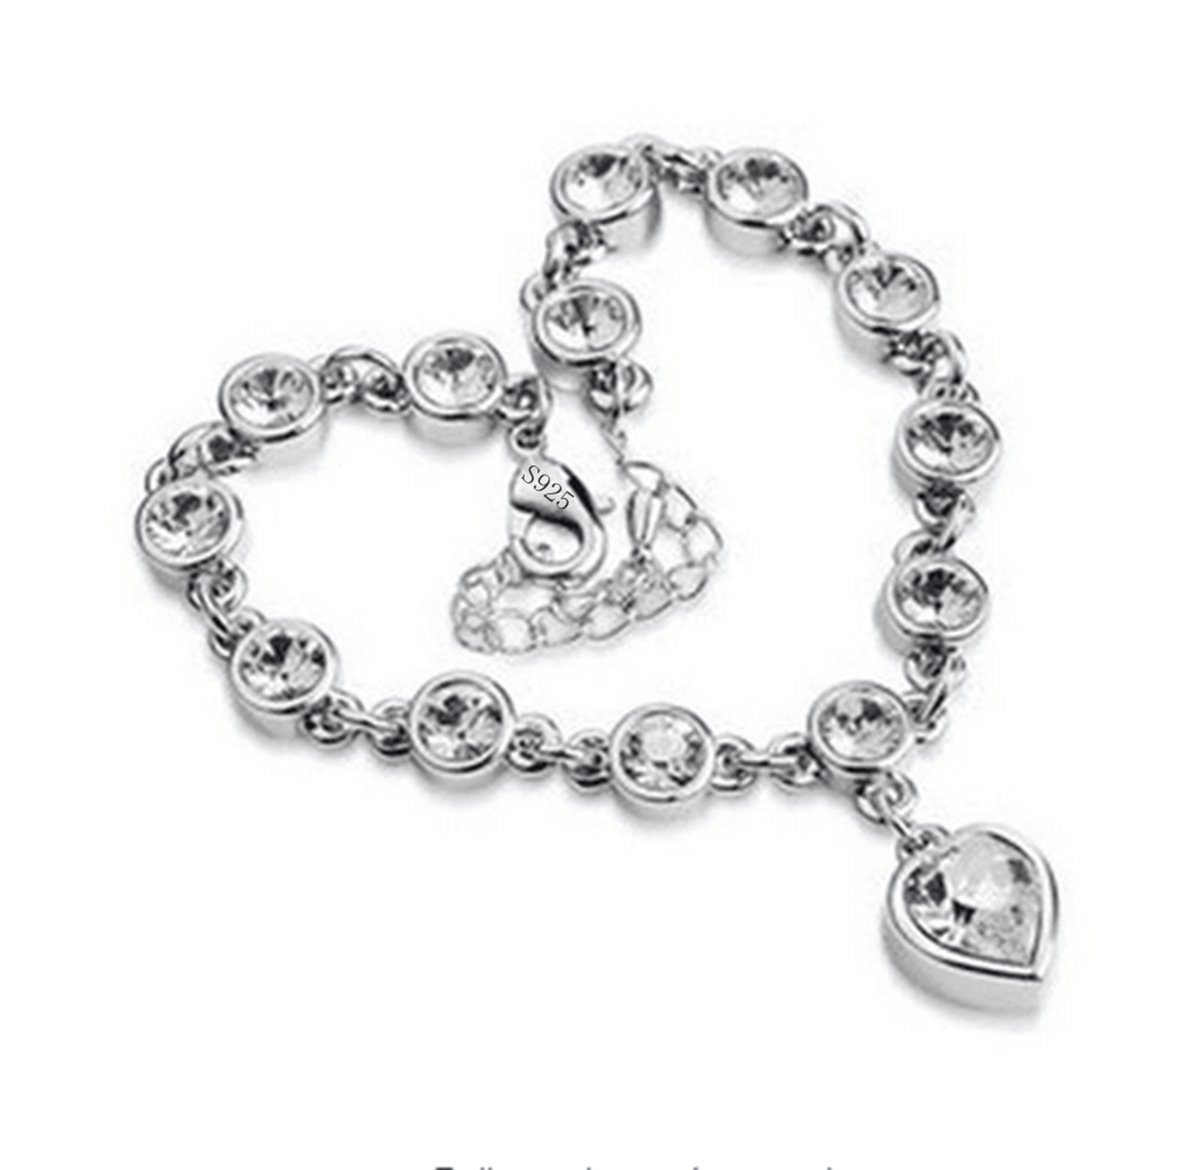 Elensan S925 Sterling Silver Heart Fashion Tennis Bracelet Cubic zirconia Jewelry